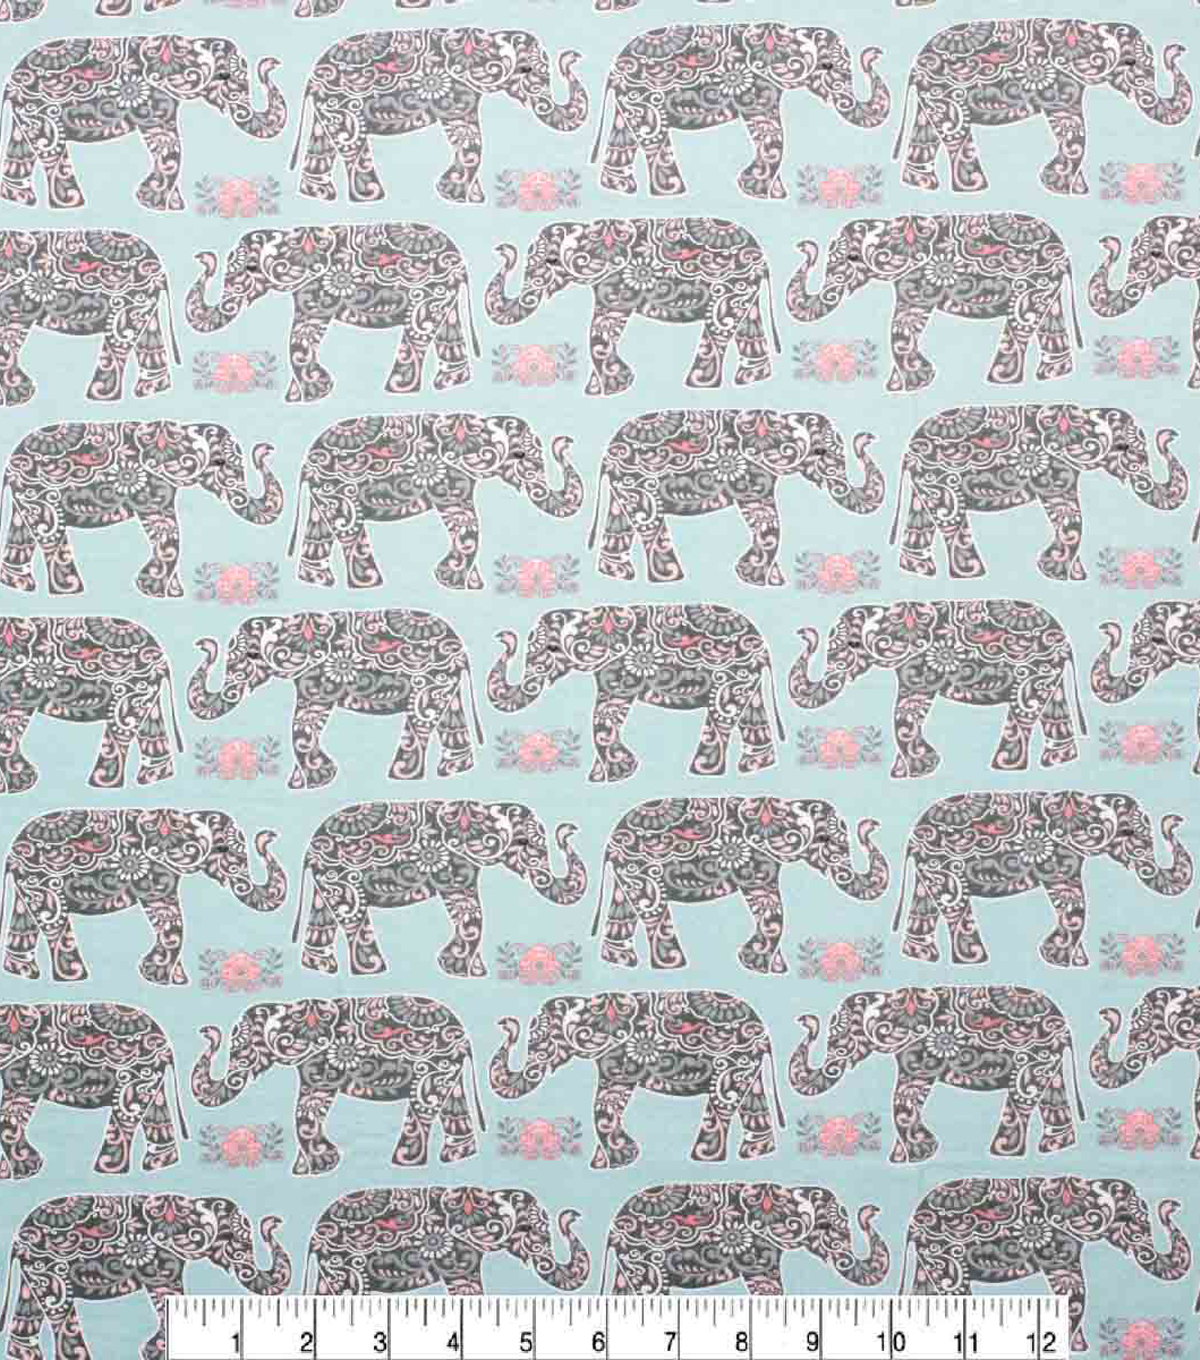 Super Snuggle Flannel Fabric-Patterened Elephant Floral